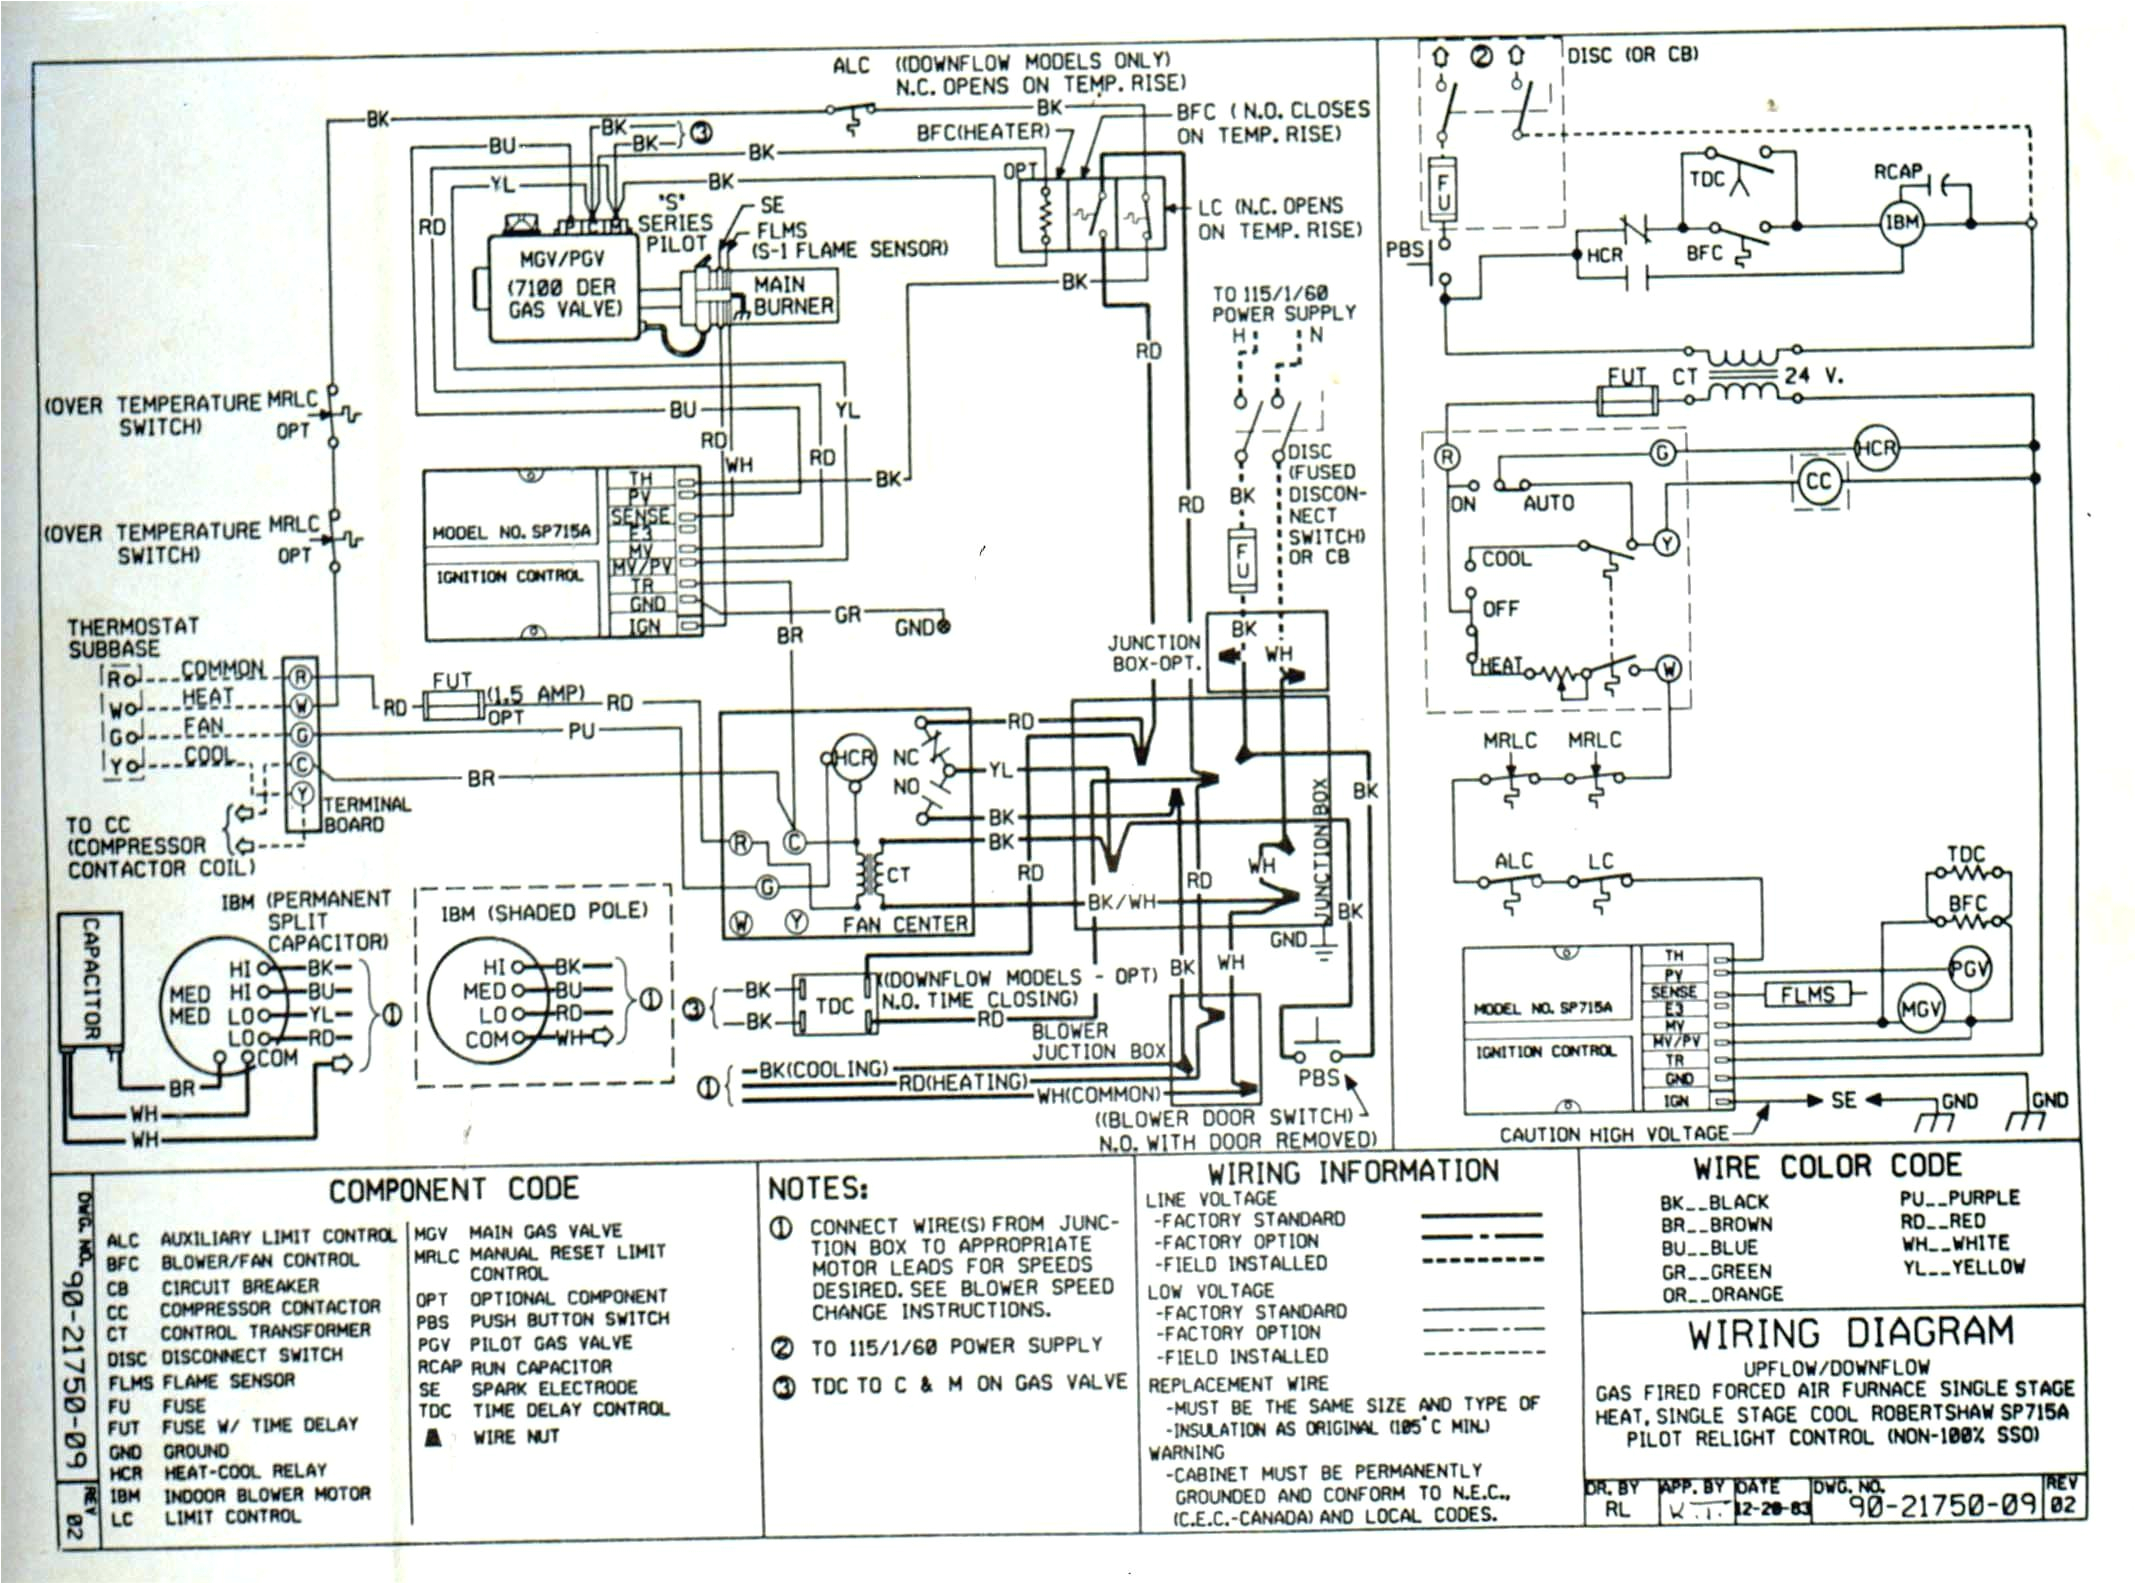 voyager 9030 wiring diagram wiring diagram voyager 9030 wiring diagram